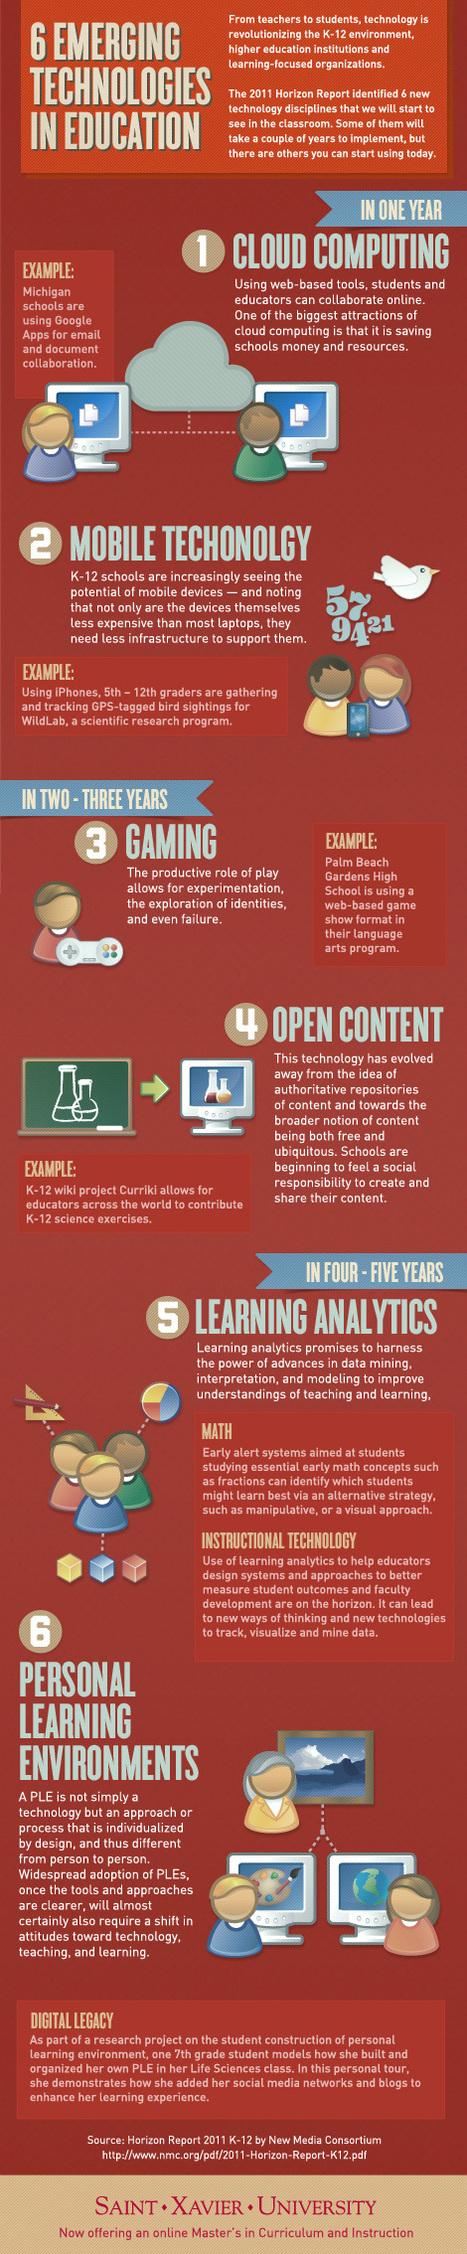 6 Emerging Technologies In Education [Infographic]   Course Technology   Scoop.it